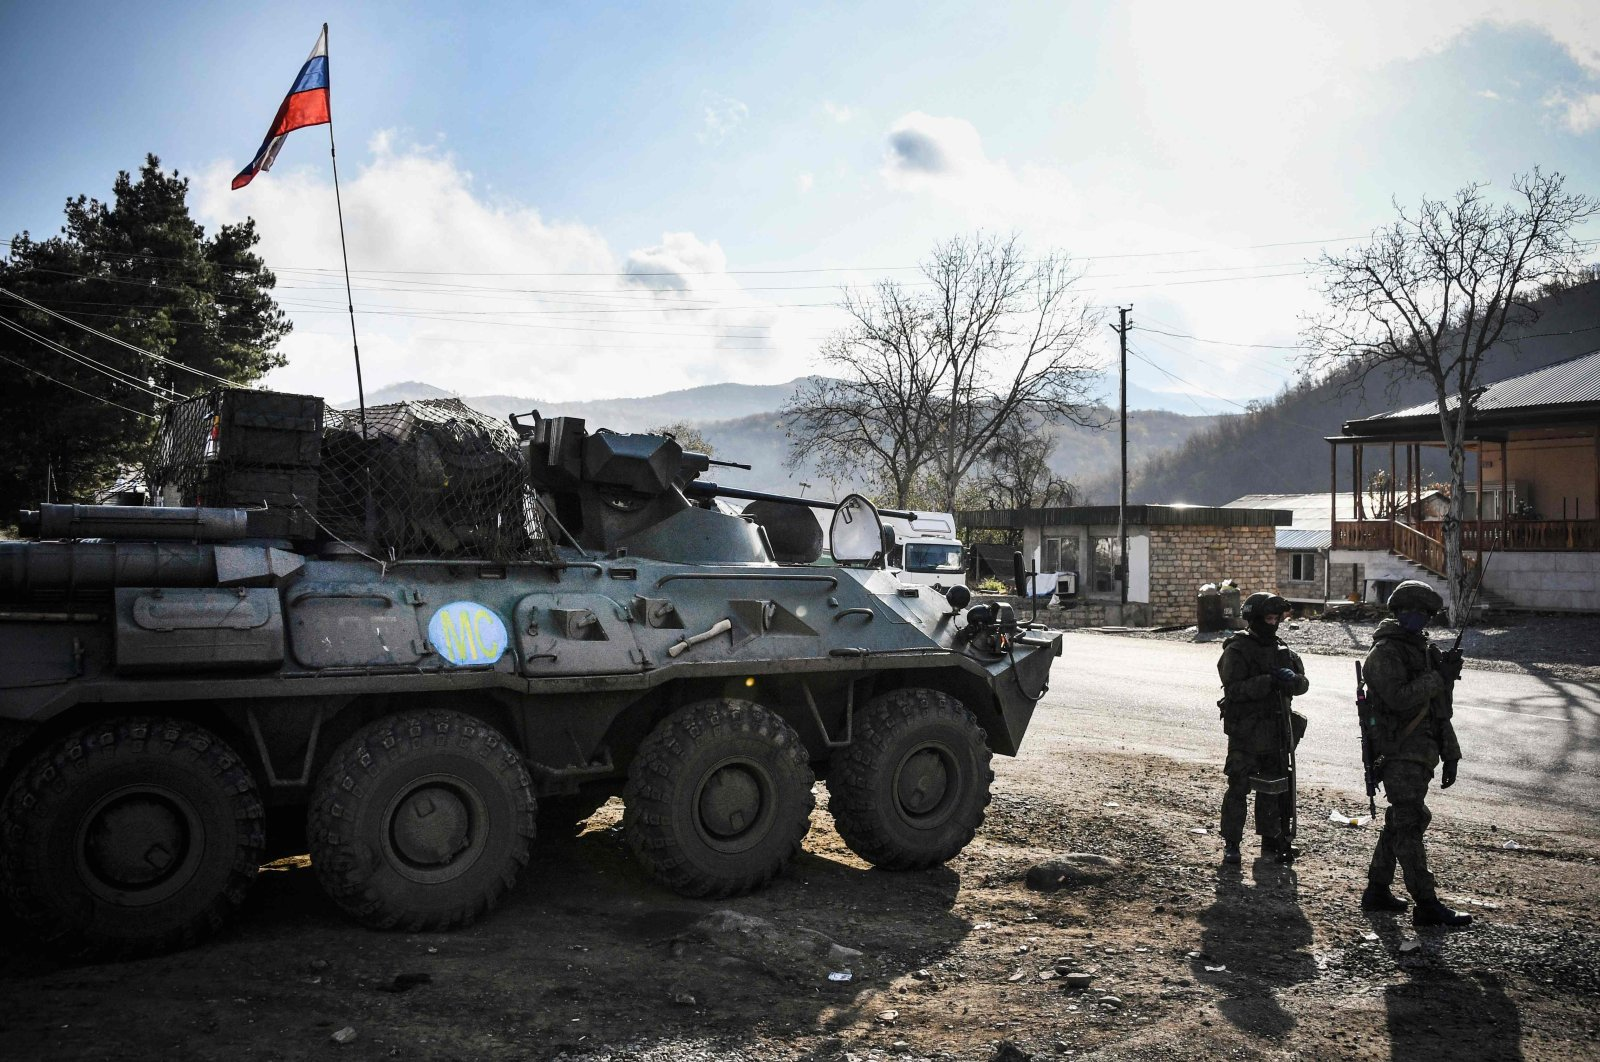 Russian peacekeepers stand beside an armored vehicle at their checkpoint as part of the Karabakh deal, outside the town of Kalbajar, Azerbaijan, Nov. 14, 2020. (AFP Photo)